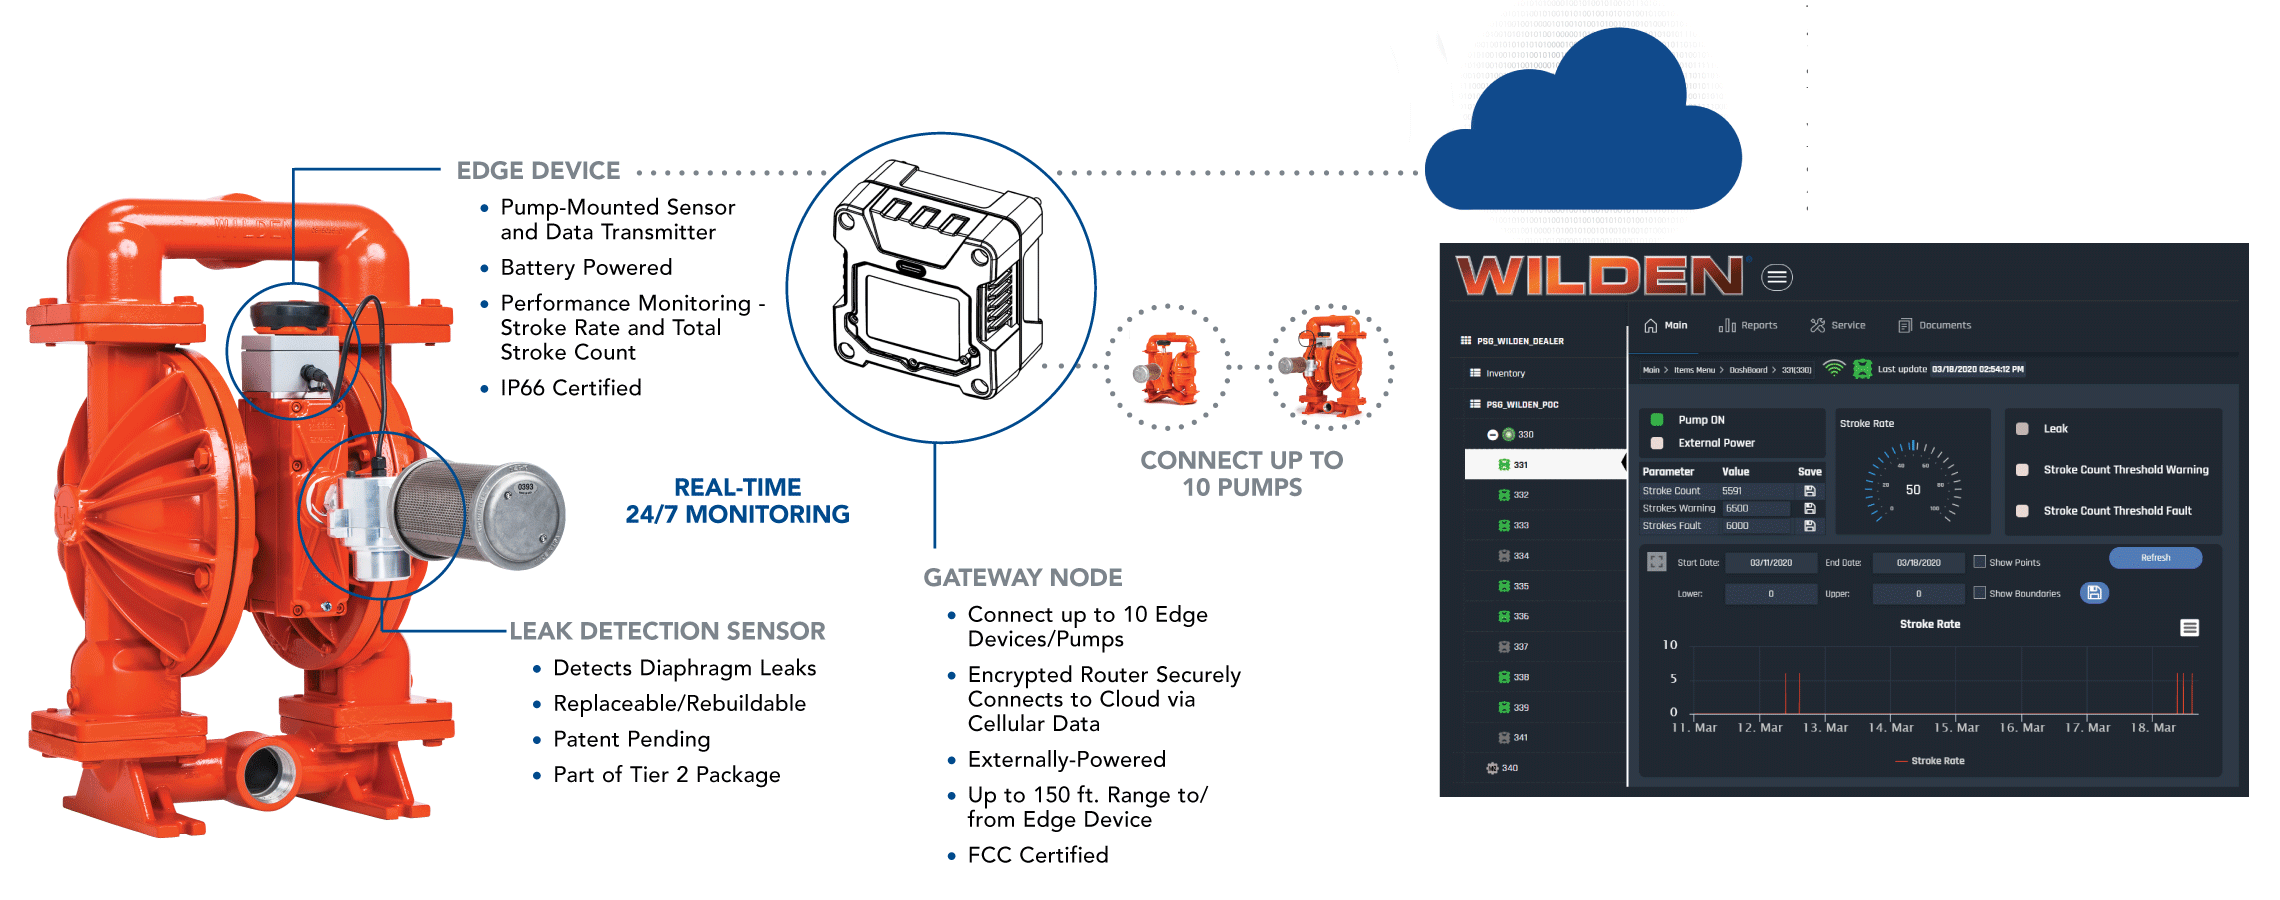 19-WILDX-1895-Web---AODD-IoT-Product-Pages